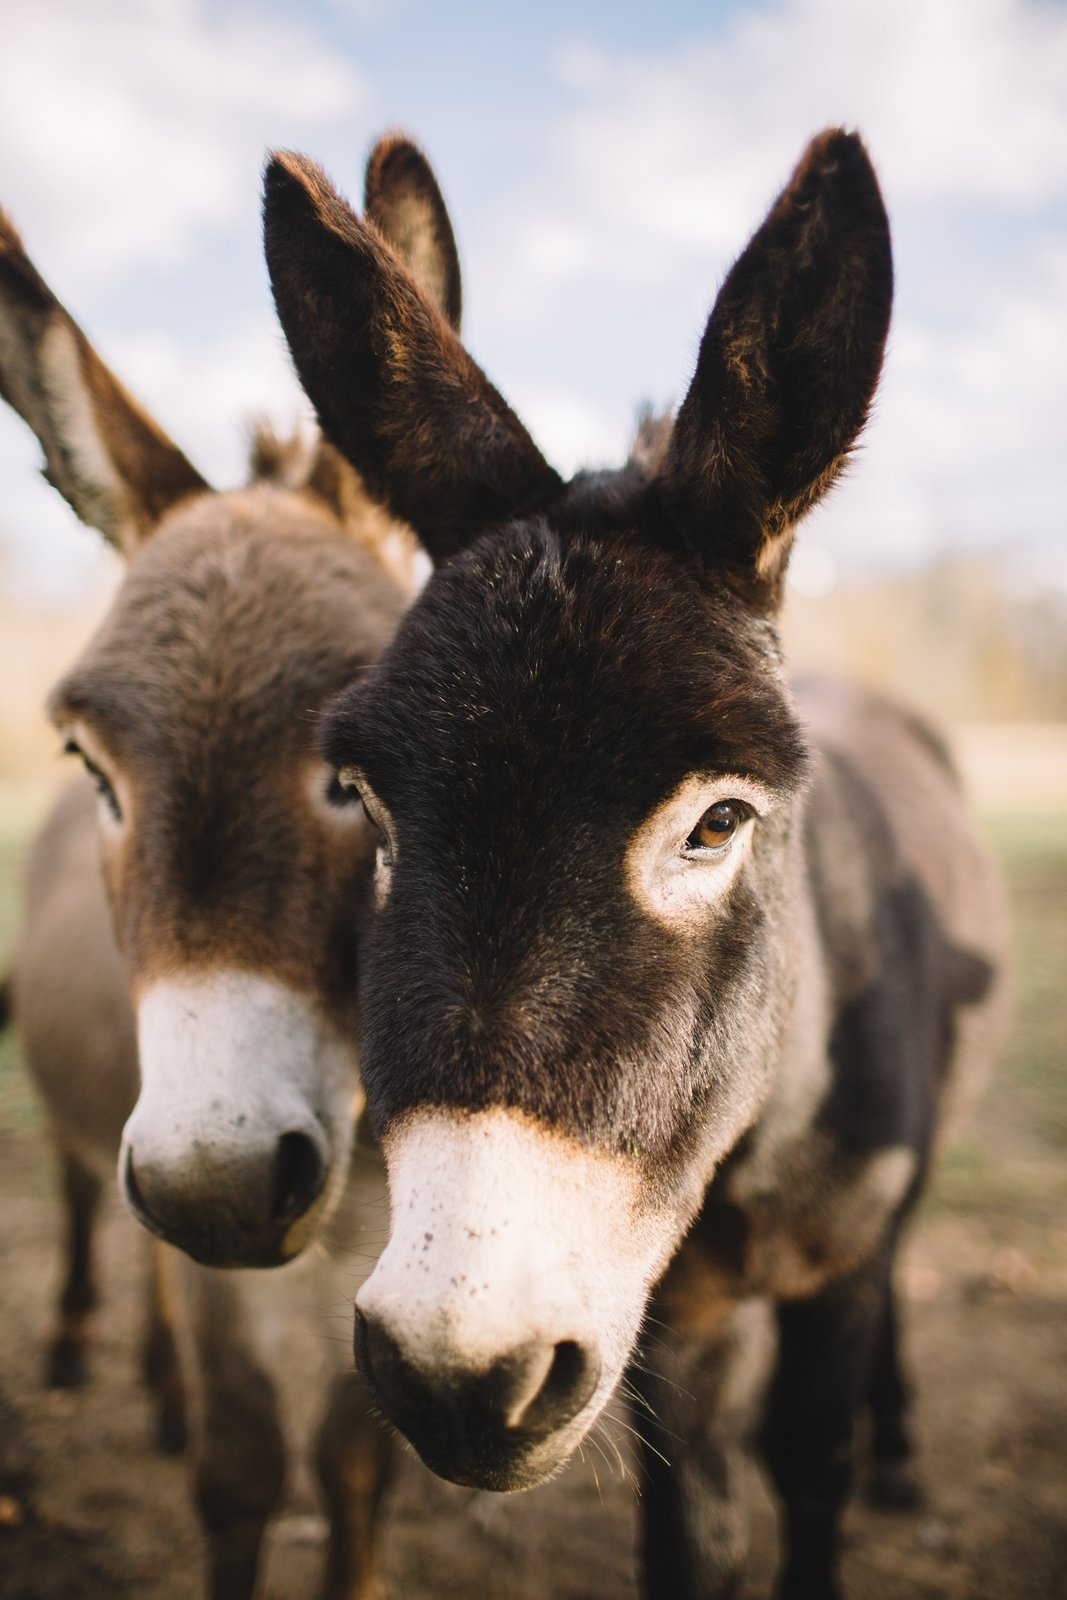 Miniature donkeys and alpacas roam the land freely.  Photo 7 of 9 in A Texas Camping Spot Complete With Yurts and Miniature Donkeys